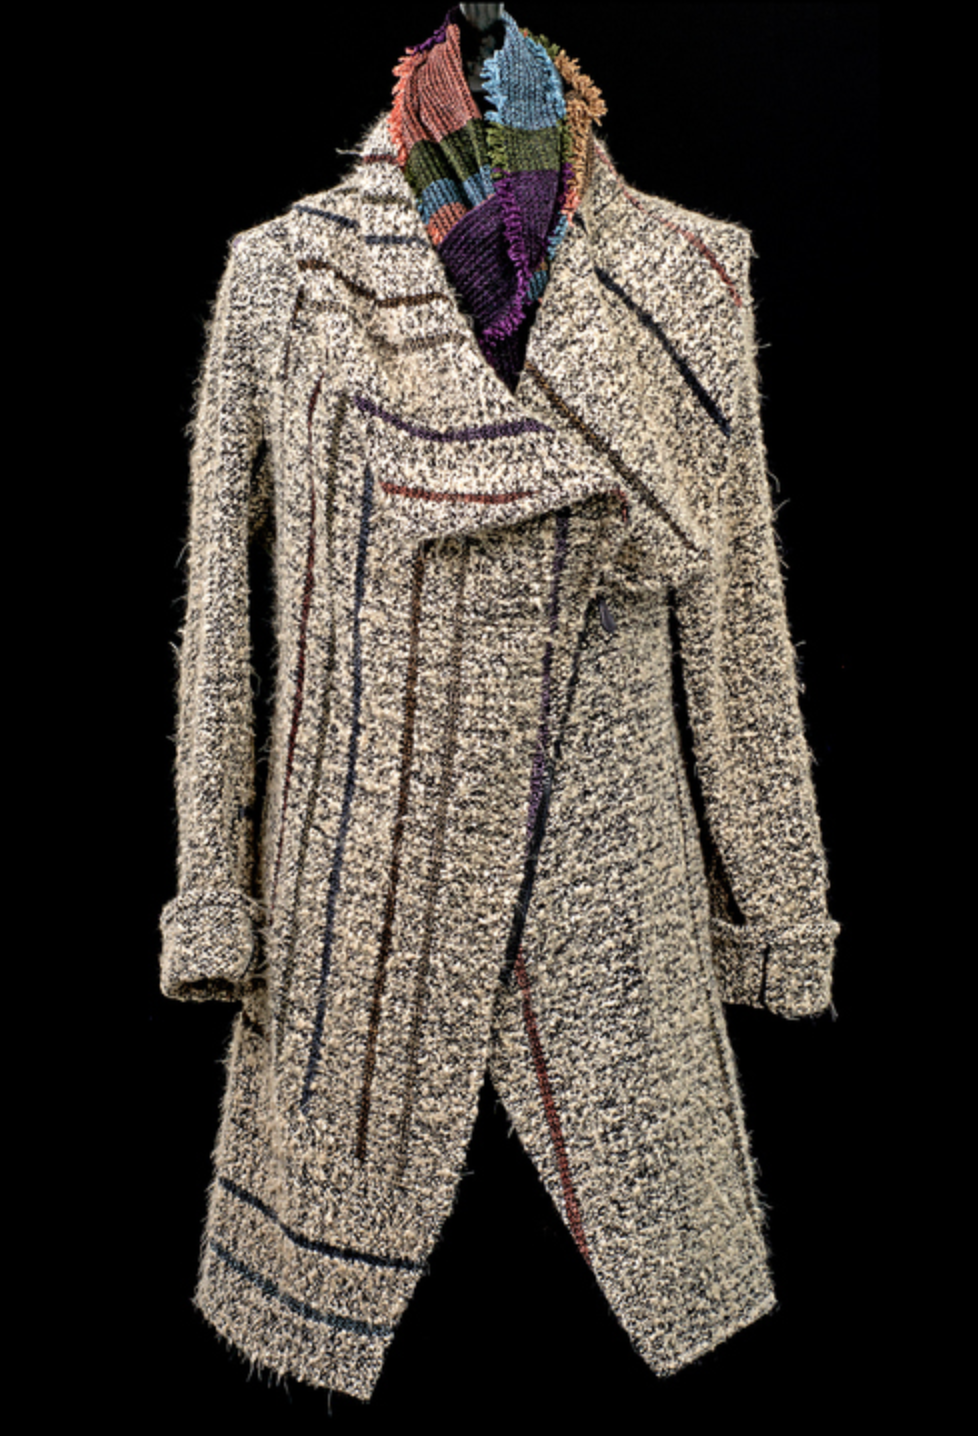 Barbara Holloway - http://www.barbaraholloway.comI hand weave my fabrics on 8-harness foot-powered floor looms with micro and plant fiber yarns. I warp the looms, weave the fabrics, wash, dry, steam press, cut, sew and hand-embellish each piece.